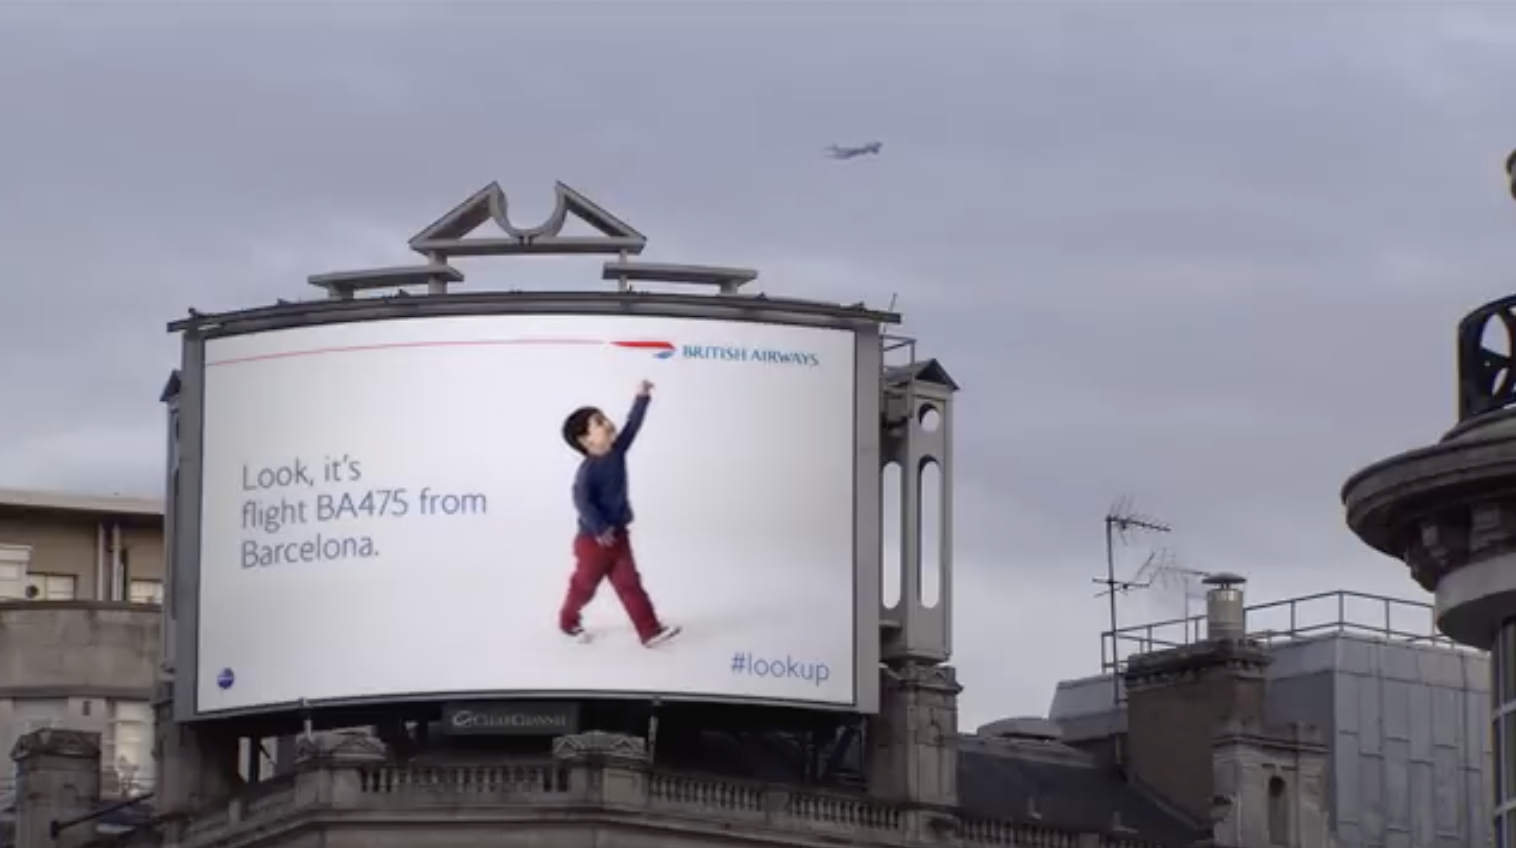 British Airways billboard campaign #lookup PR